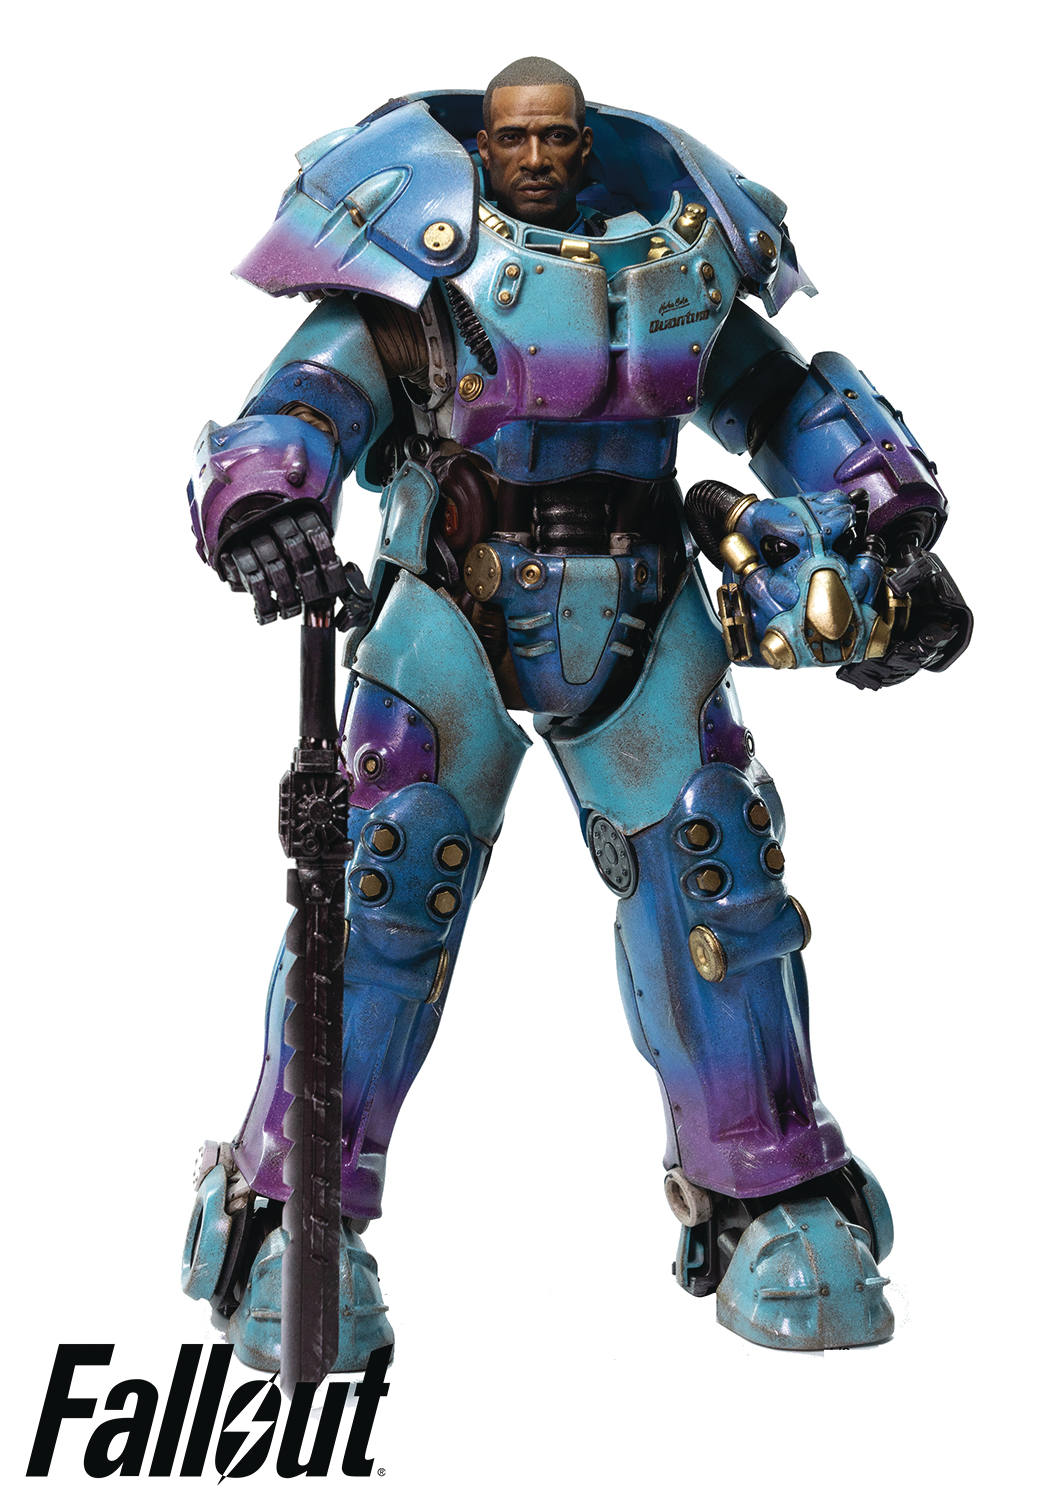 FALLOUT X-01 POWER ARMOR QUANTUM VAR PX ED 1/6 SCALE FIG (NE